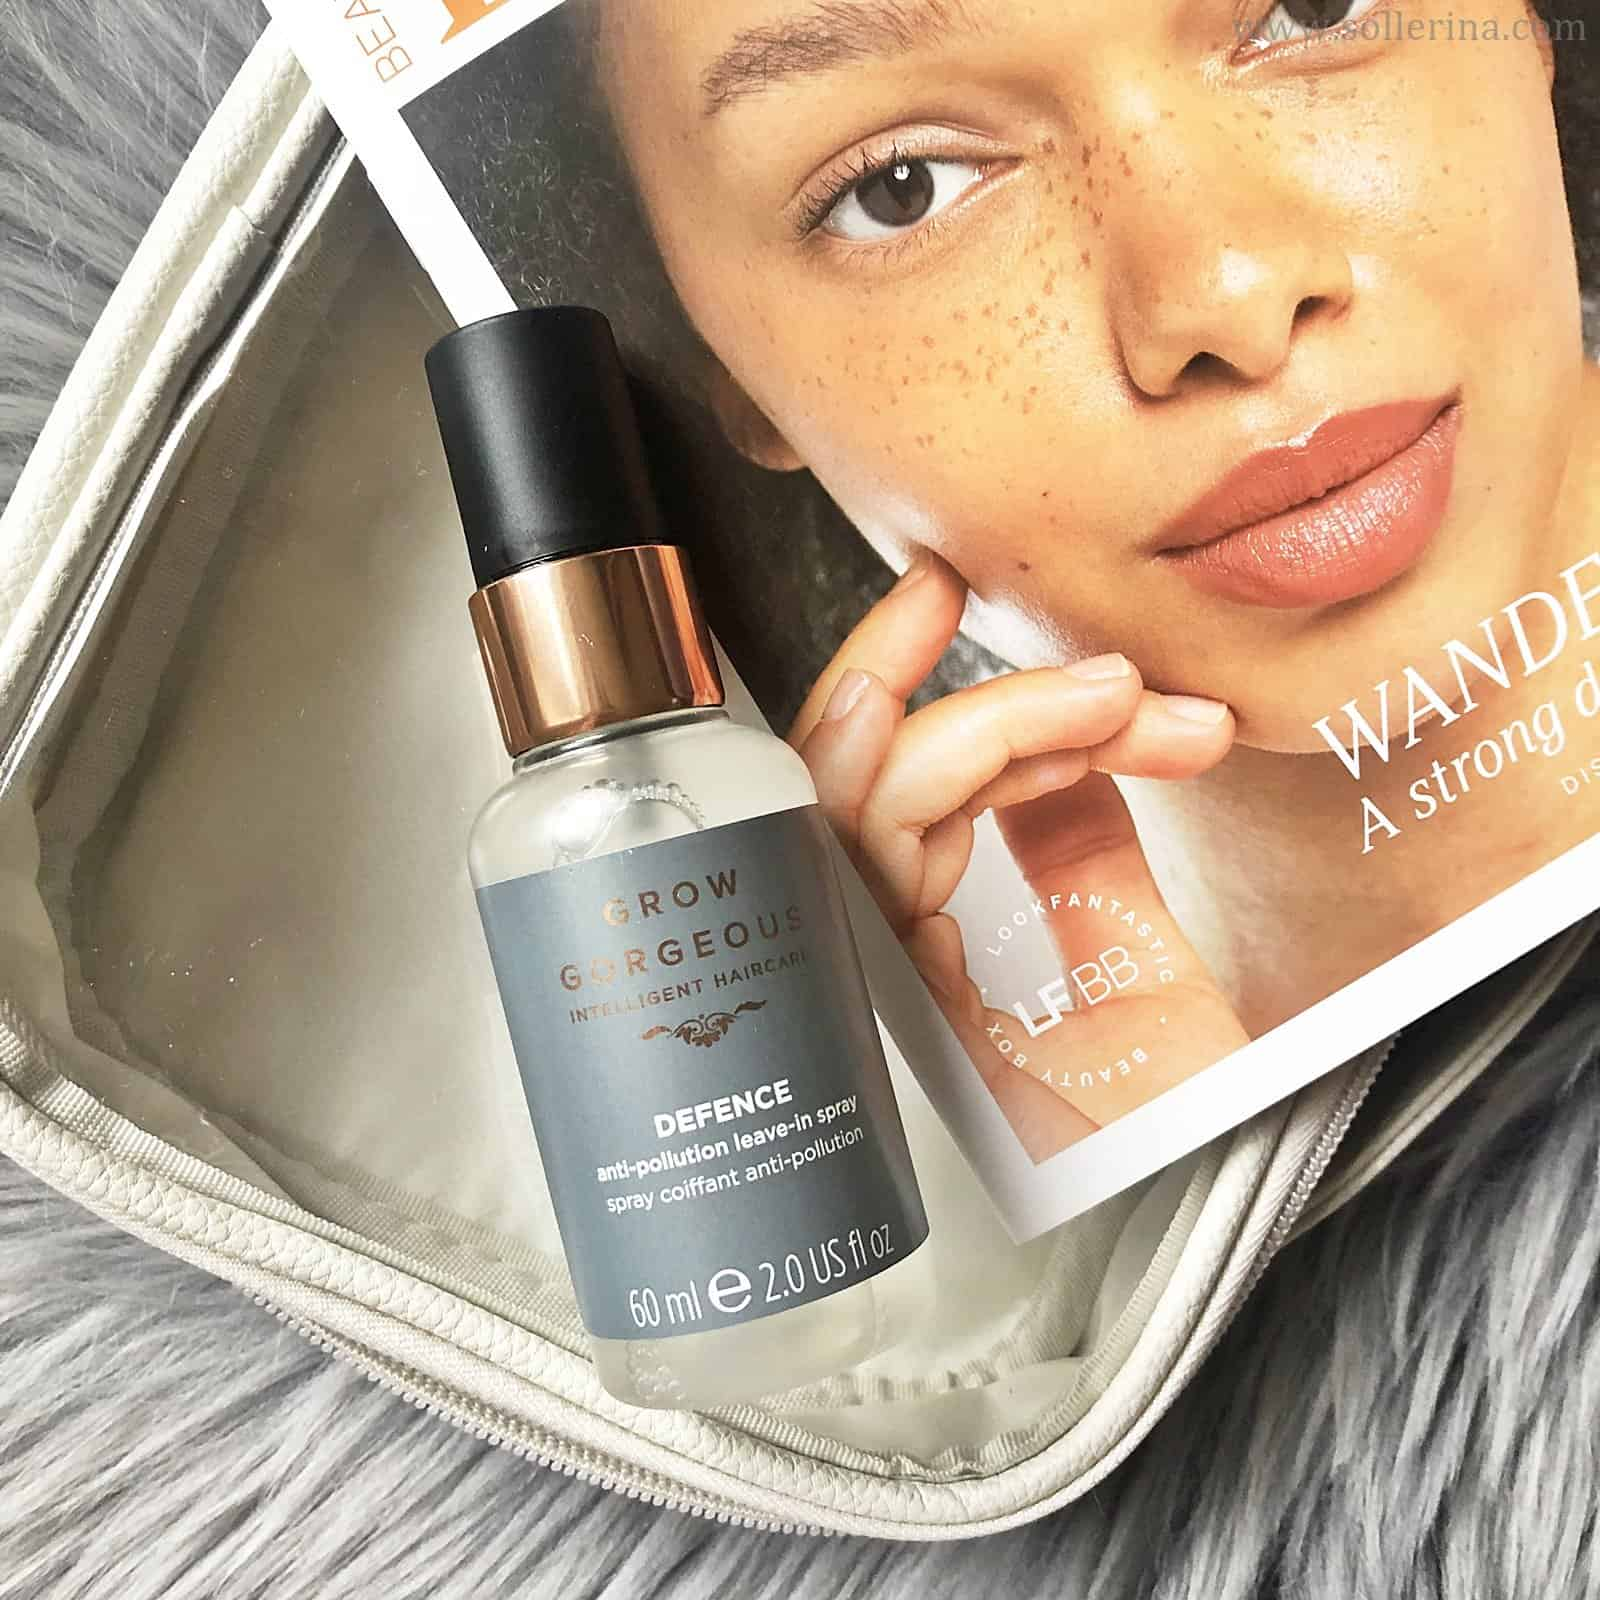 Grow Gorgeous – Defence Anti-Pollution Leave-In Spray